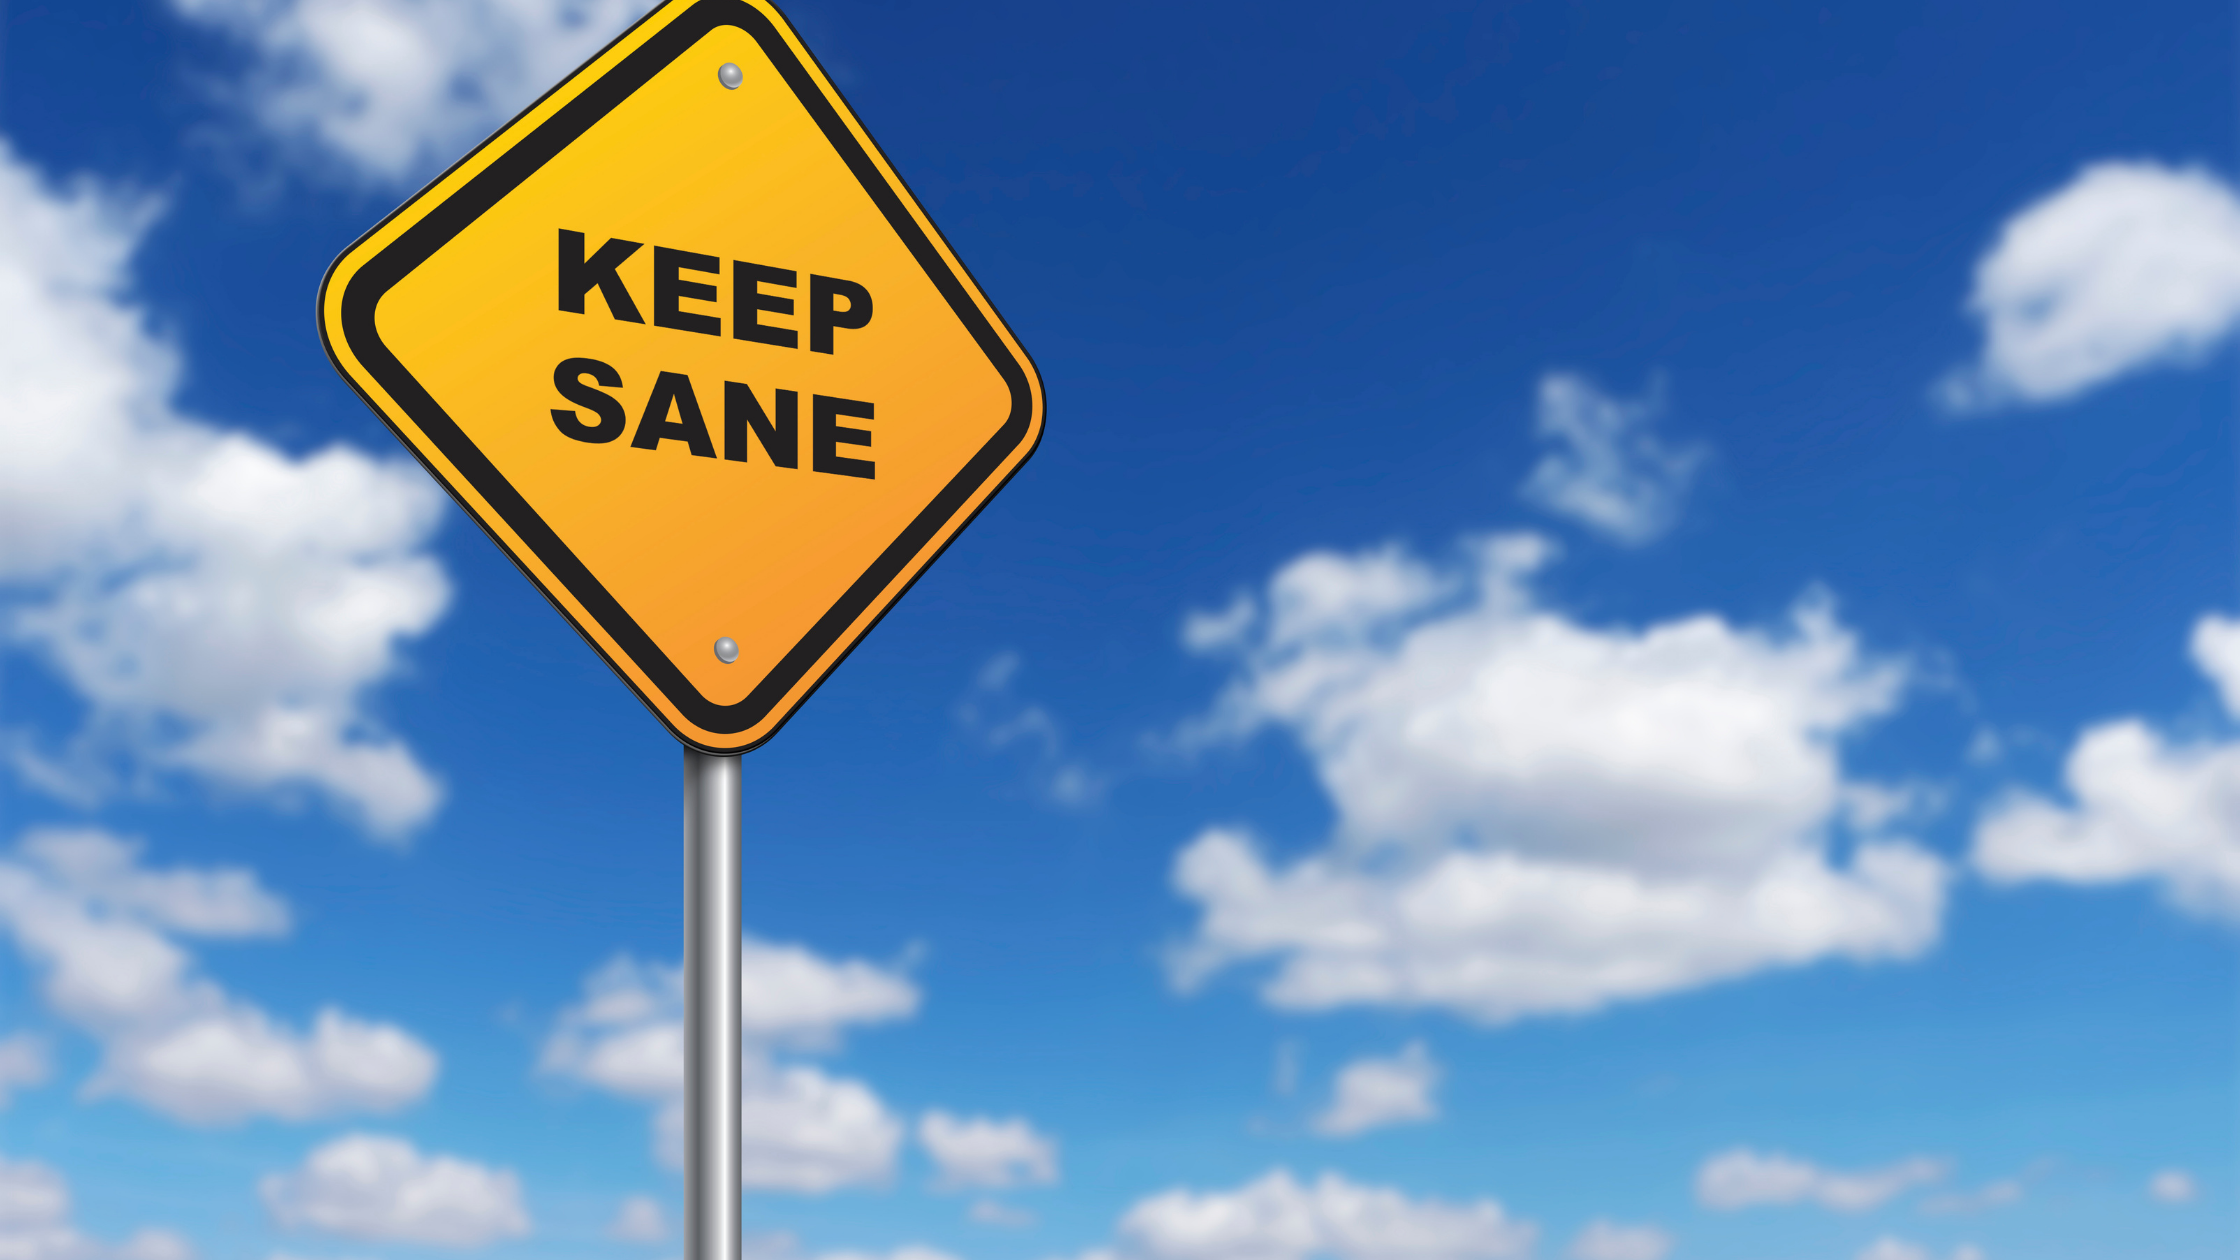 How to Stay Sane in an Era of Narcissism